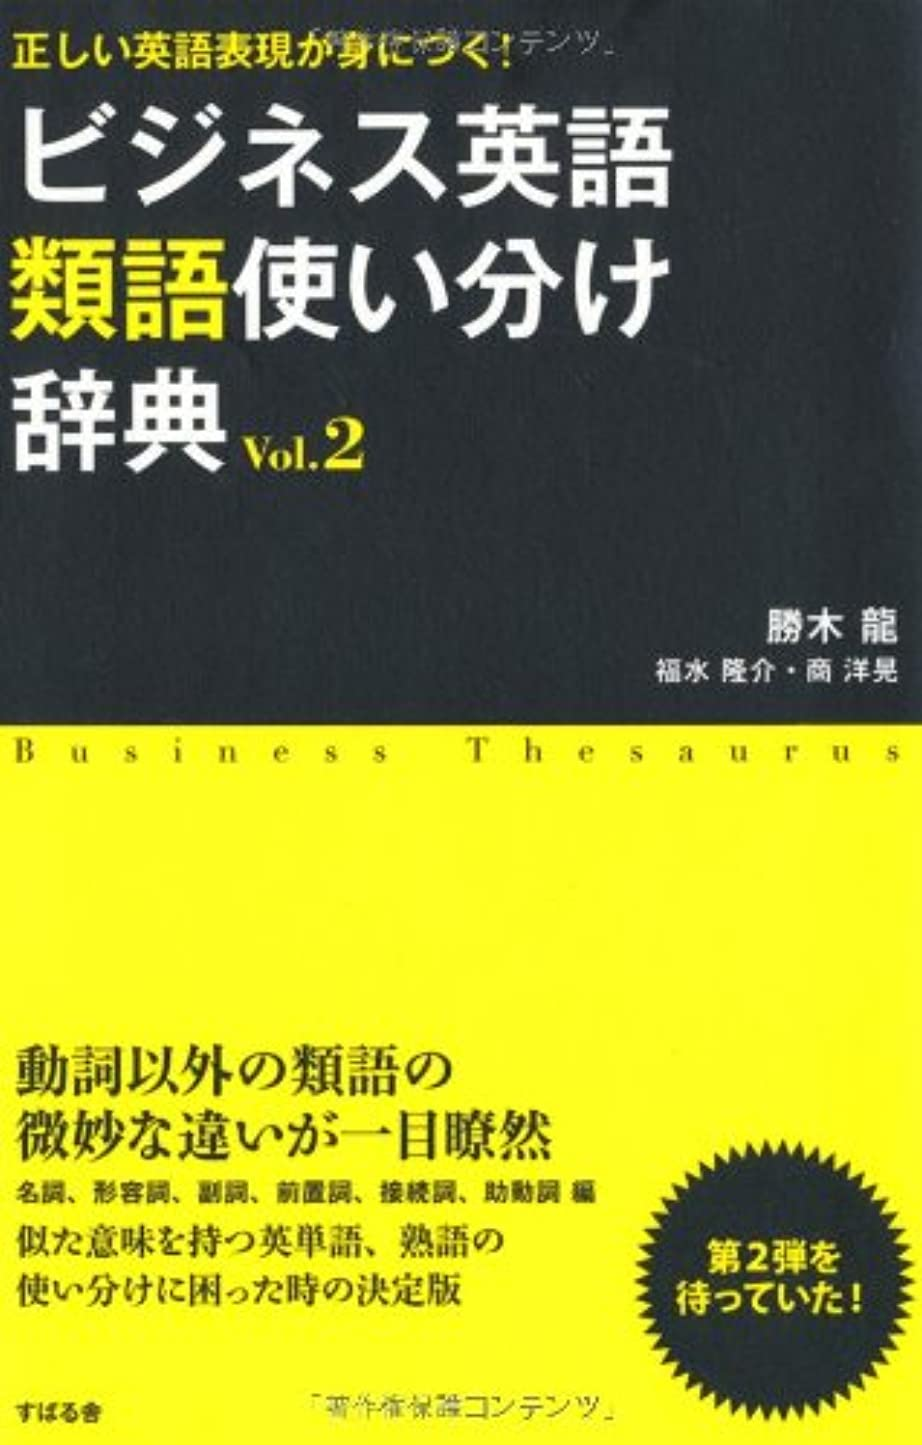 めんどり家具蒸留契約?法律用語英和辞典コンパクト版 English-Jpanese Dictionary of Contractual and Legal Terms: New Compact Edition